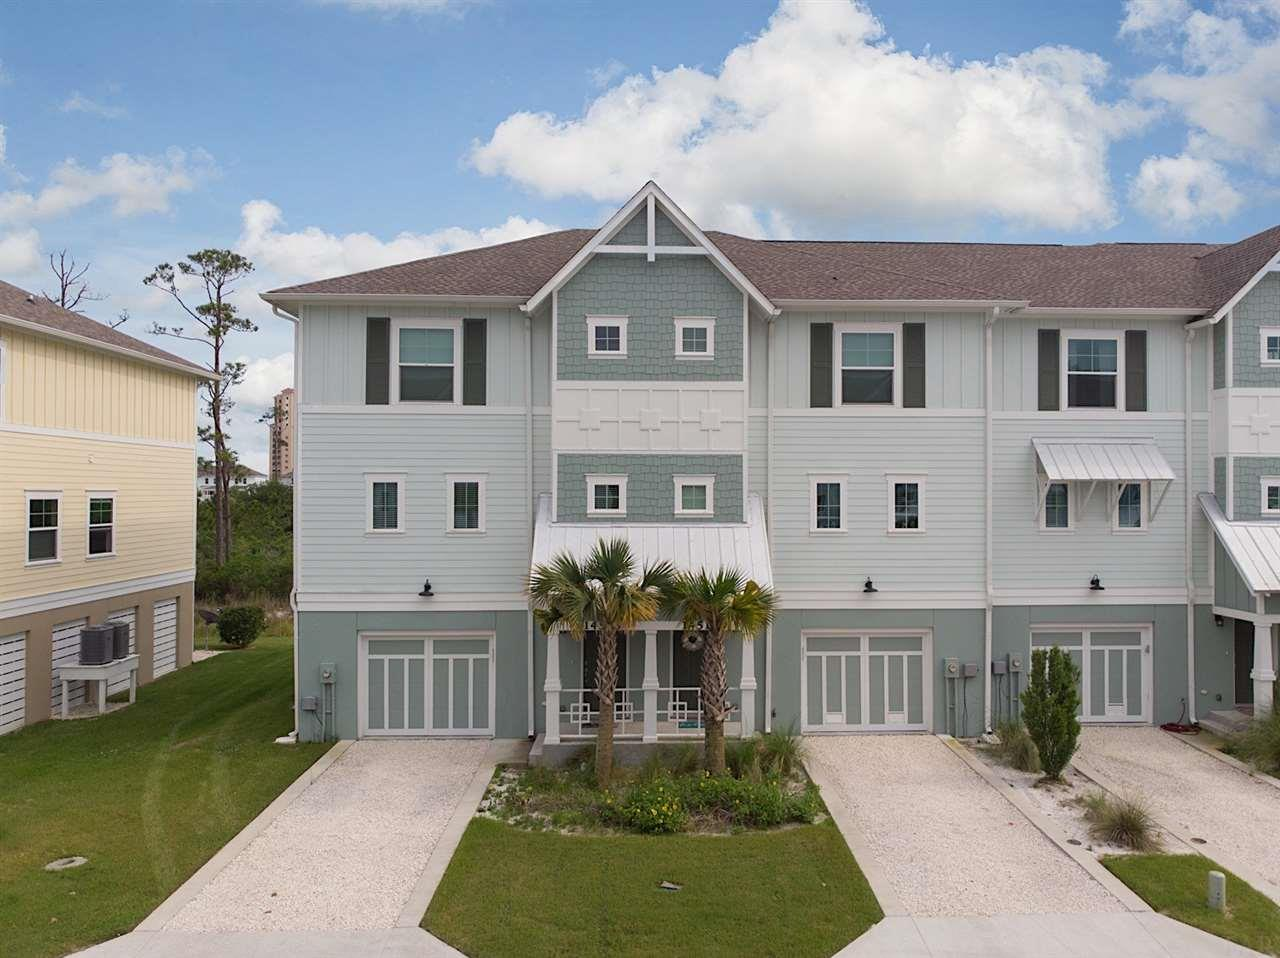 14517 SALT MEADOW DR, Perdido Key, Florida